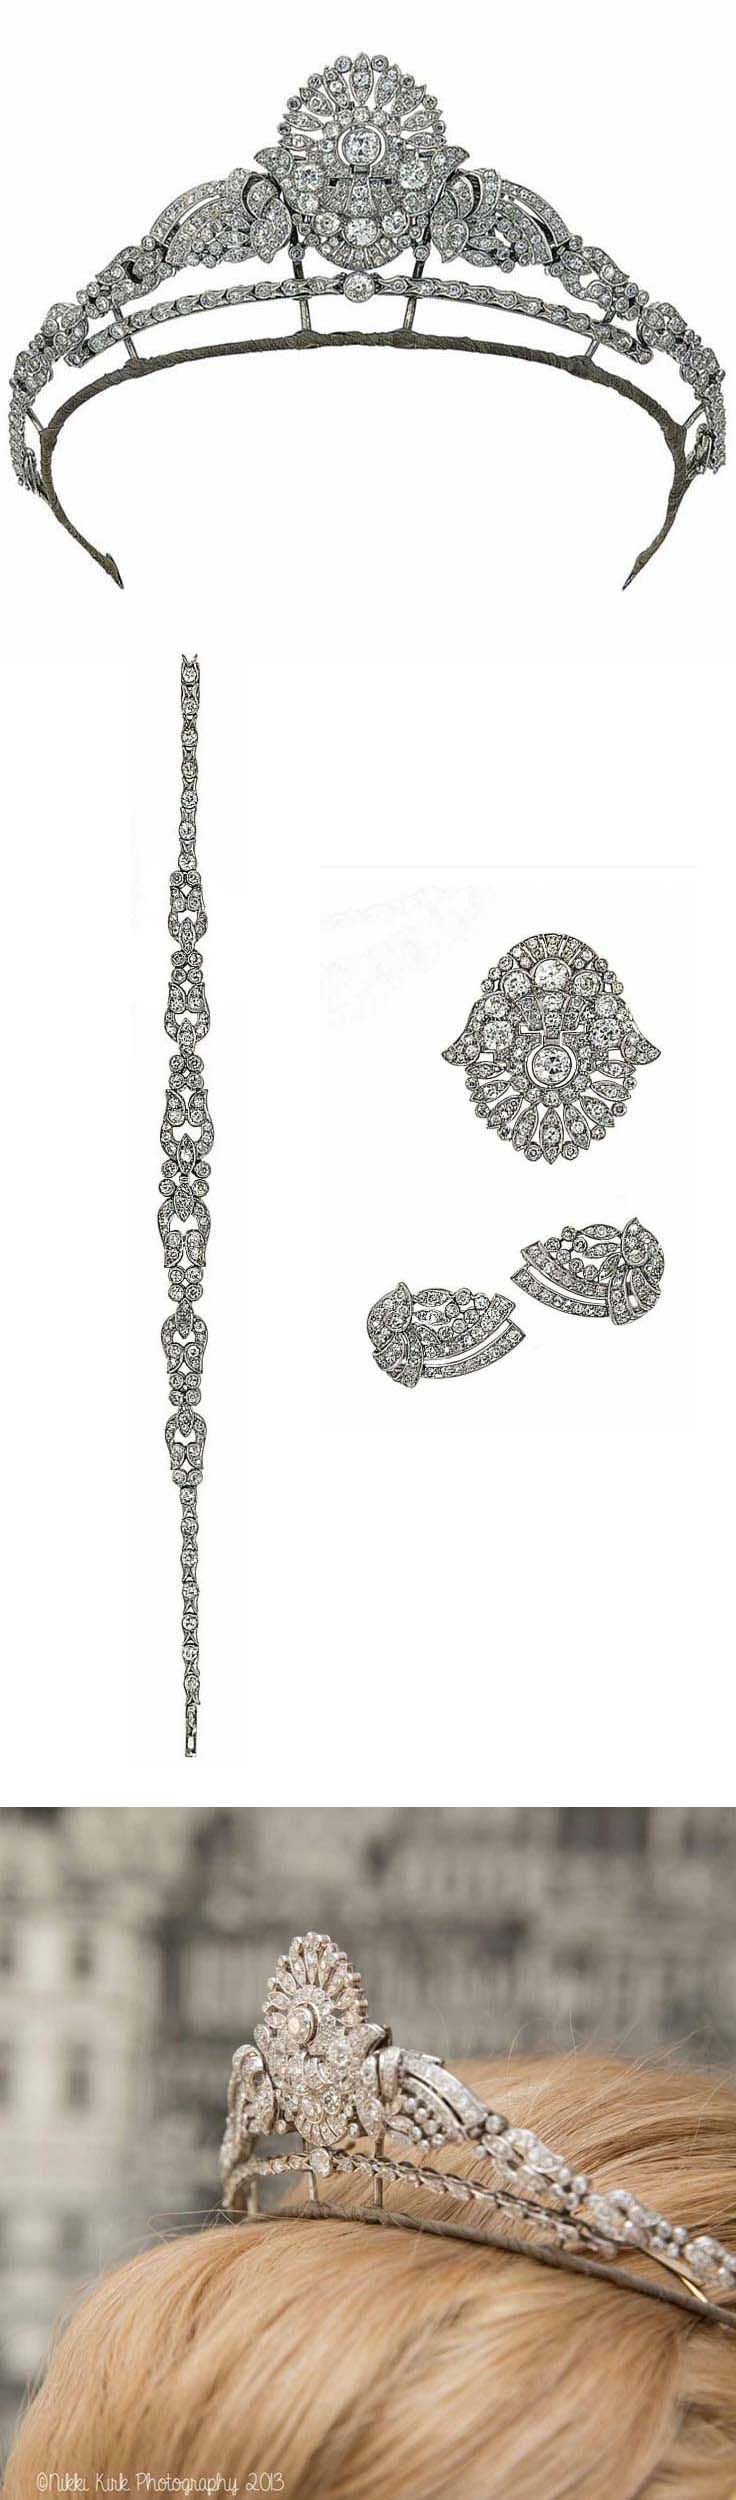 AnAn Art Deco diamond tiara / necklace. The central plaque of stylised foliate openwork design set throughout with old brilliant and single-cut diamonds, between similarly-set foliate scrolls, to a tapering fancy-link necklace set with old-cut diamonds throughout, converts to a brooch, earclips and a bracelet, circa 1930, necklace and tiara fitting provided, in a fitted red leather case by            Garrard & Co.